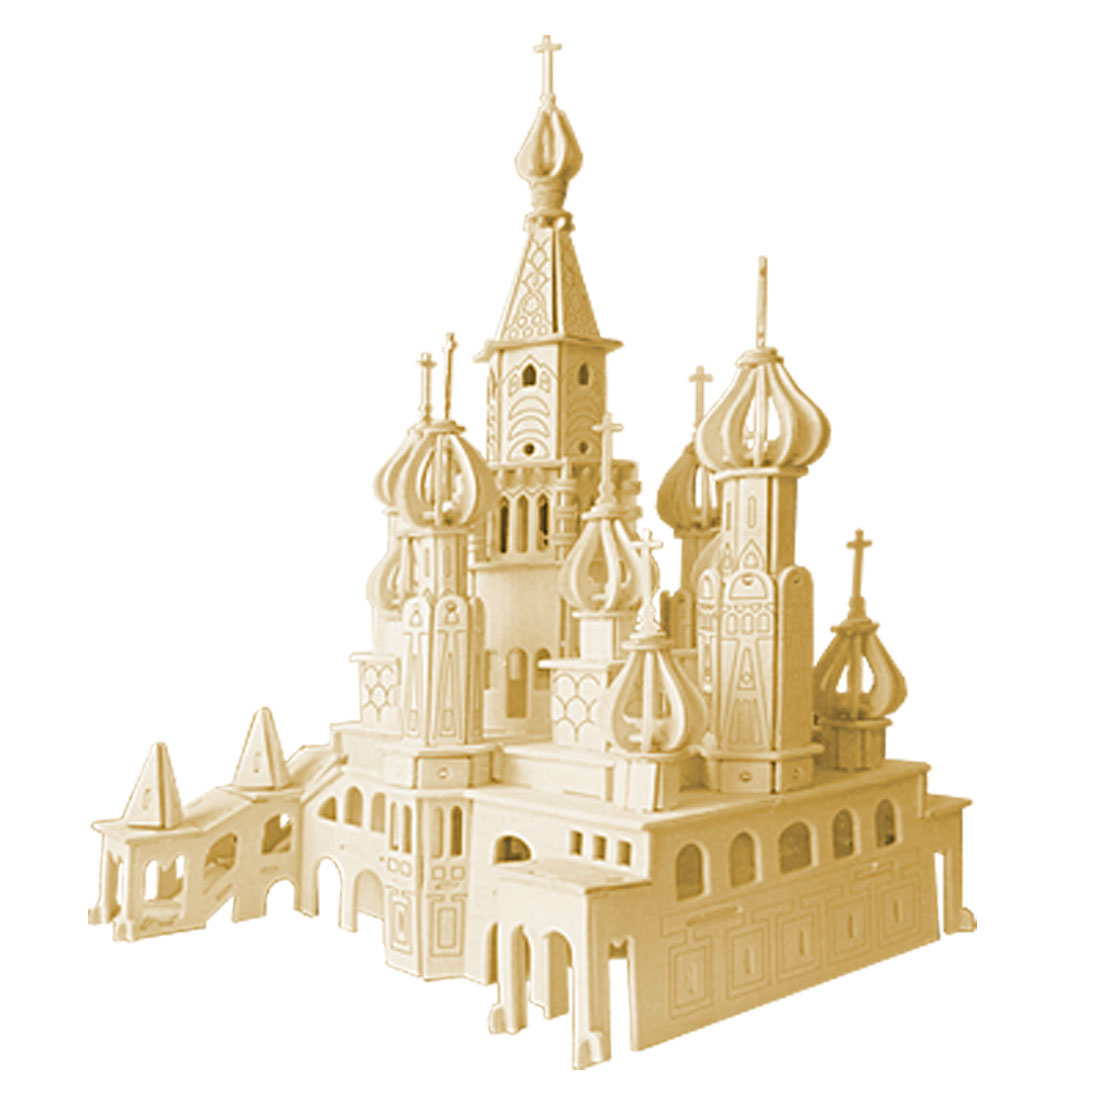 DIY Educational ST Petersburg Church Model Woodcraft Construction Kit 3D Puzzle Toy for Kids